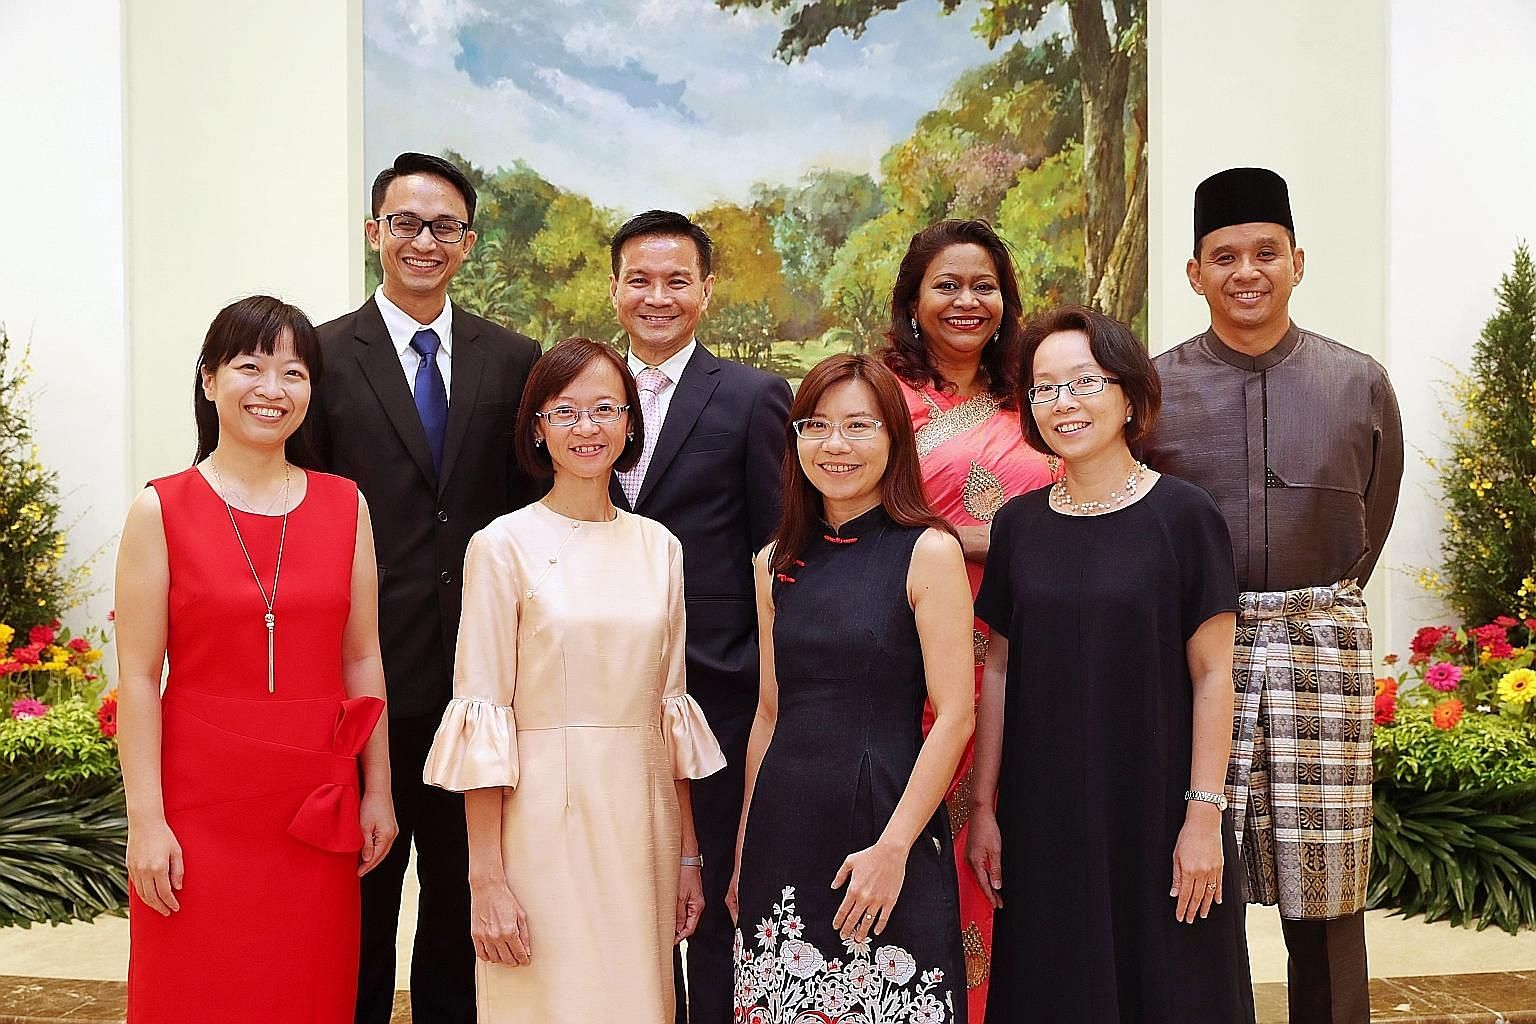 Recipients of the President's Award for Teachers 2018: (from left) Ms Ng Sheh Feng, 36, from Ahmad Ibrahim Secondary; Mr Matthew Ong, 38, from St Andrew's Junior School; Ms Goh Wai Leng, 42, from Geylang Methodist (Primary); Mr George Teo, 52, from S